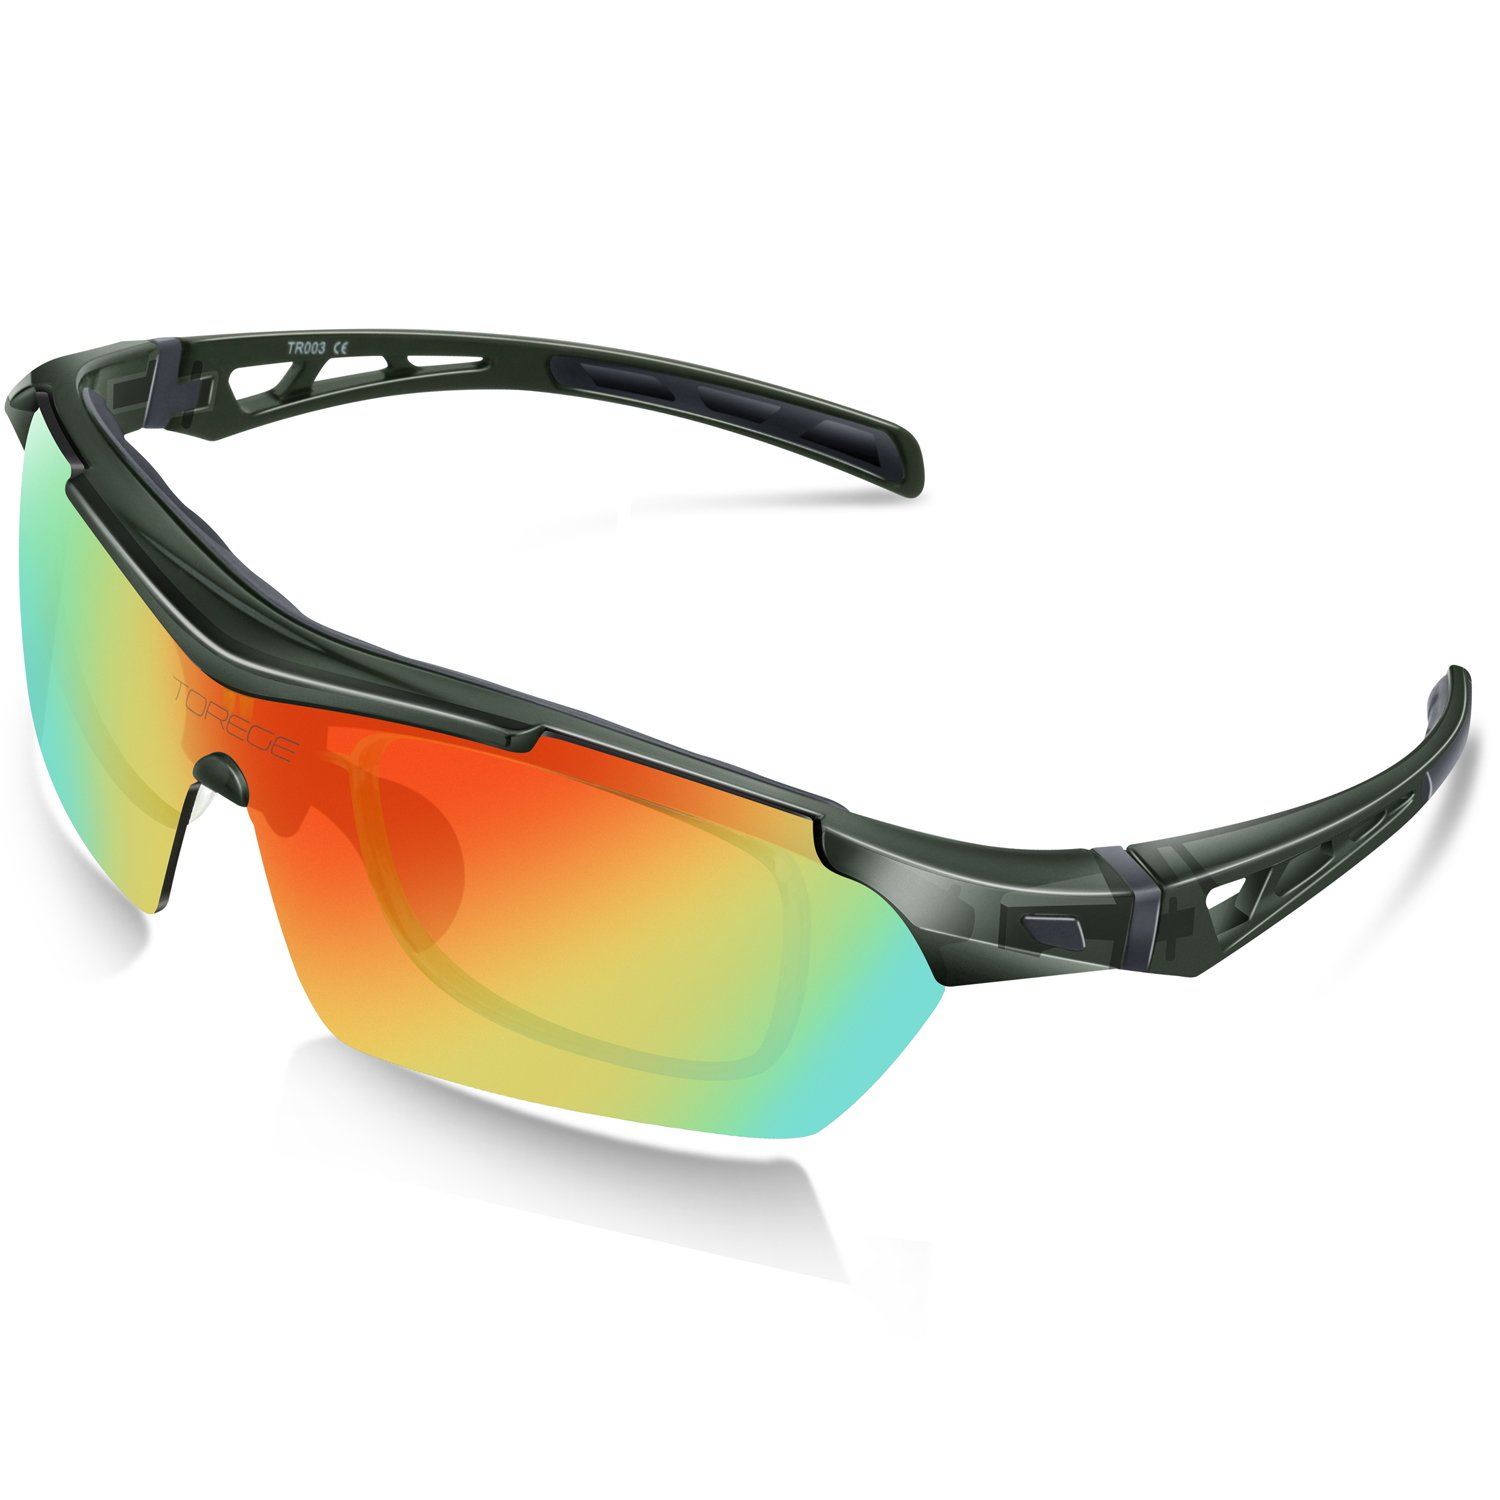 TOREGE Polarized Sports Sunglasses For Cycling Running Fishing Golf TR003 (Transparent Gray&Red lens)